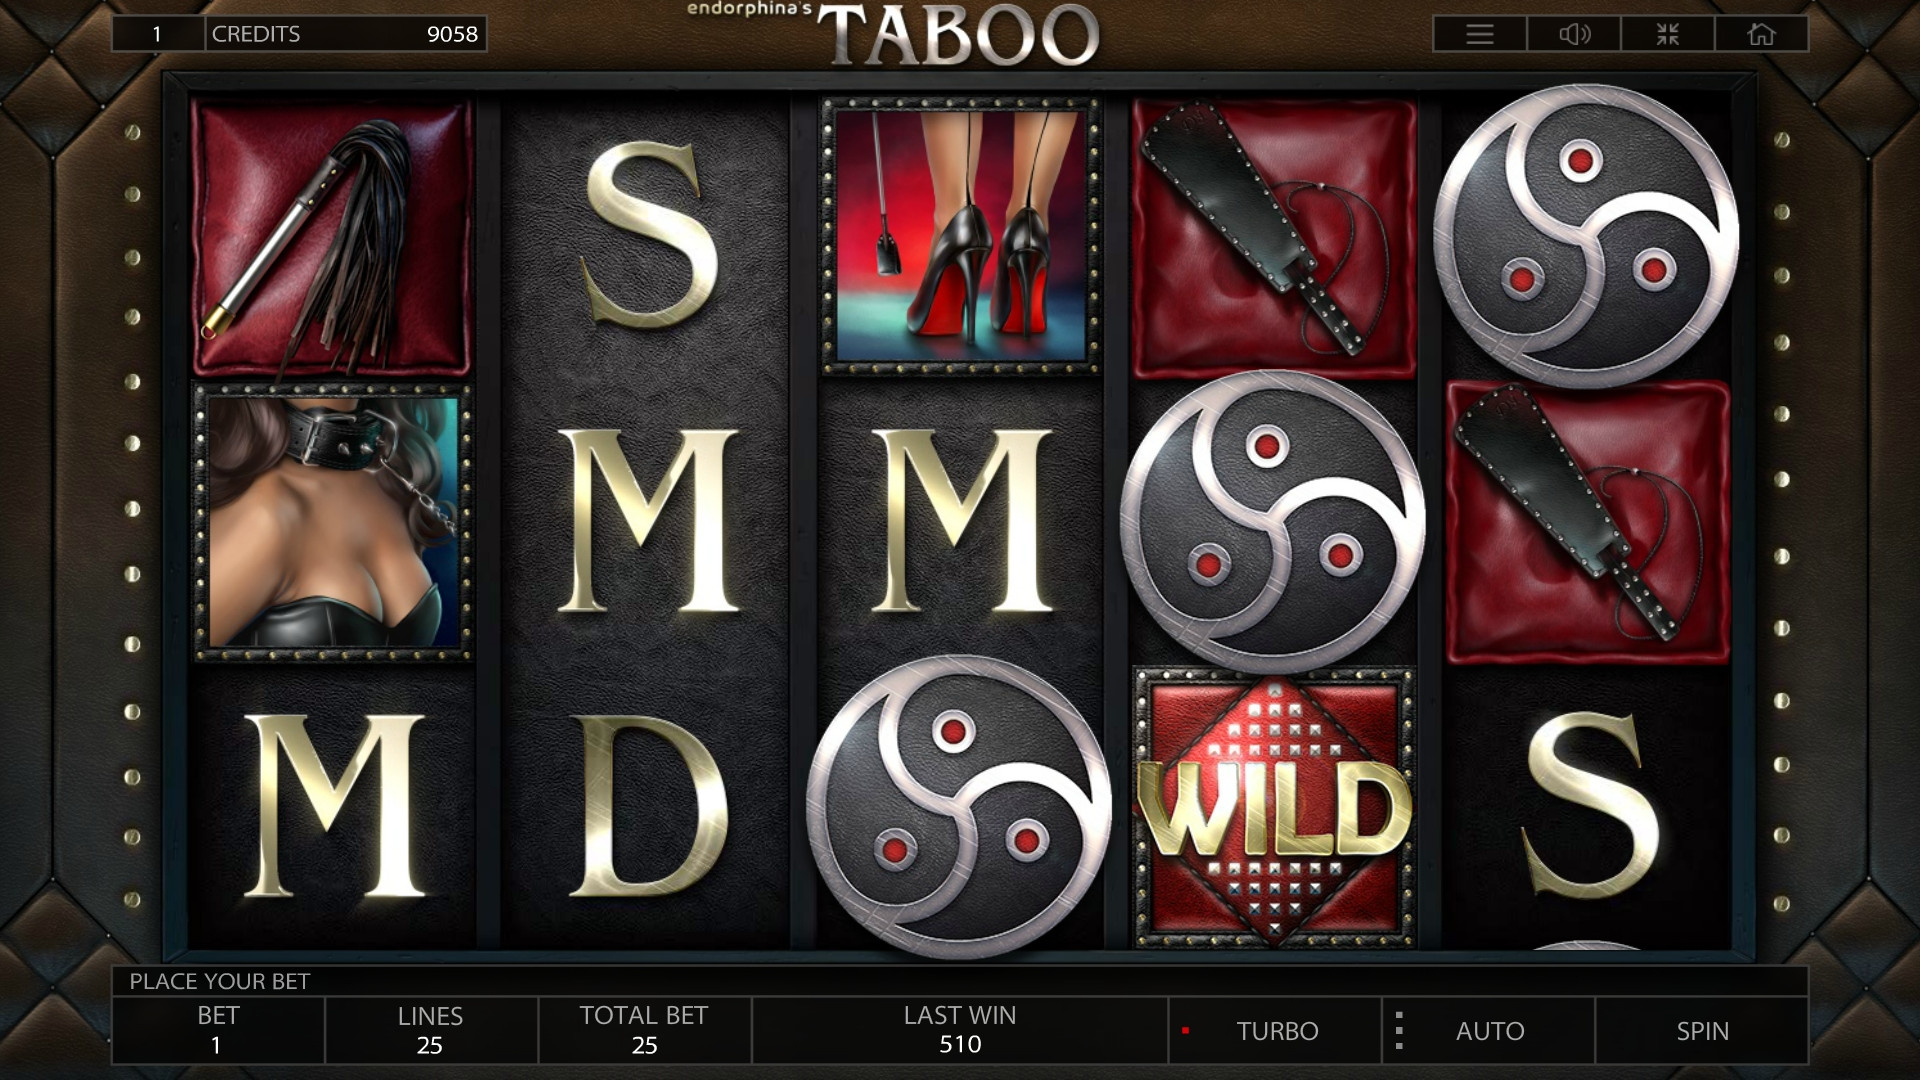 Taboo (Taboo) from category Slots